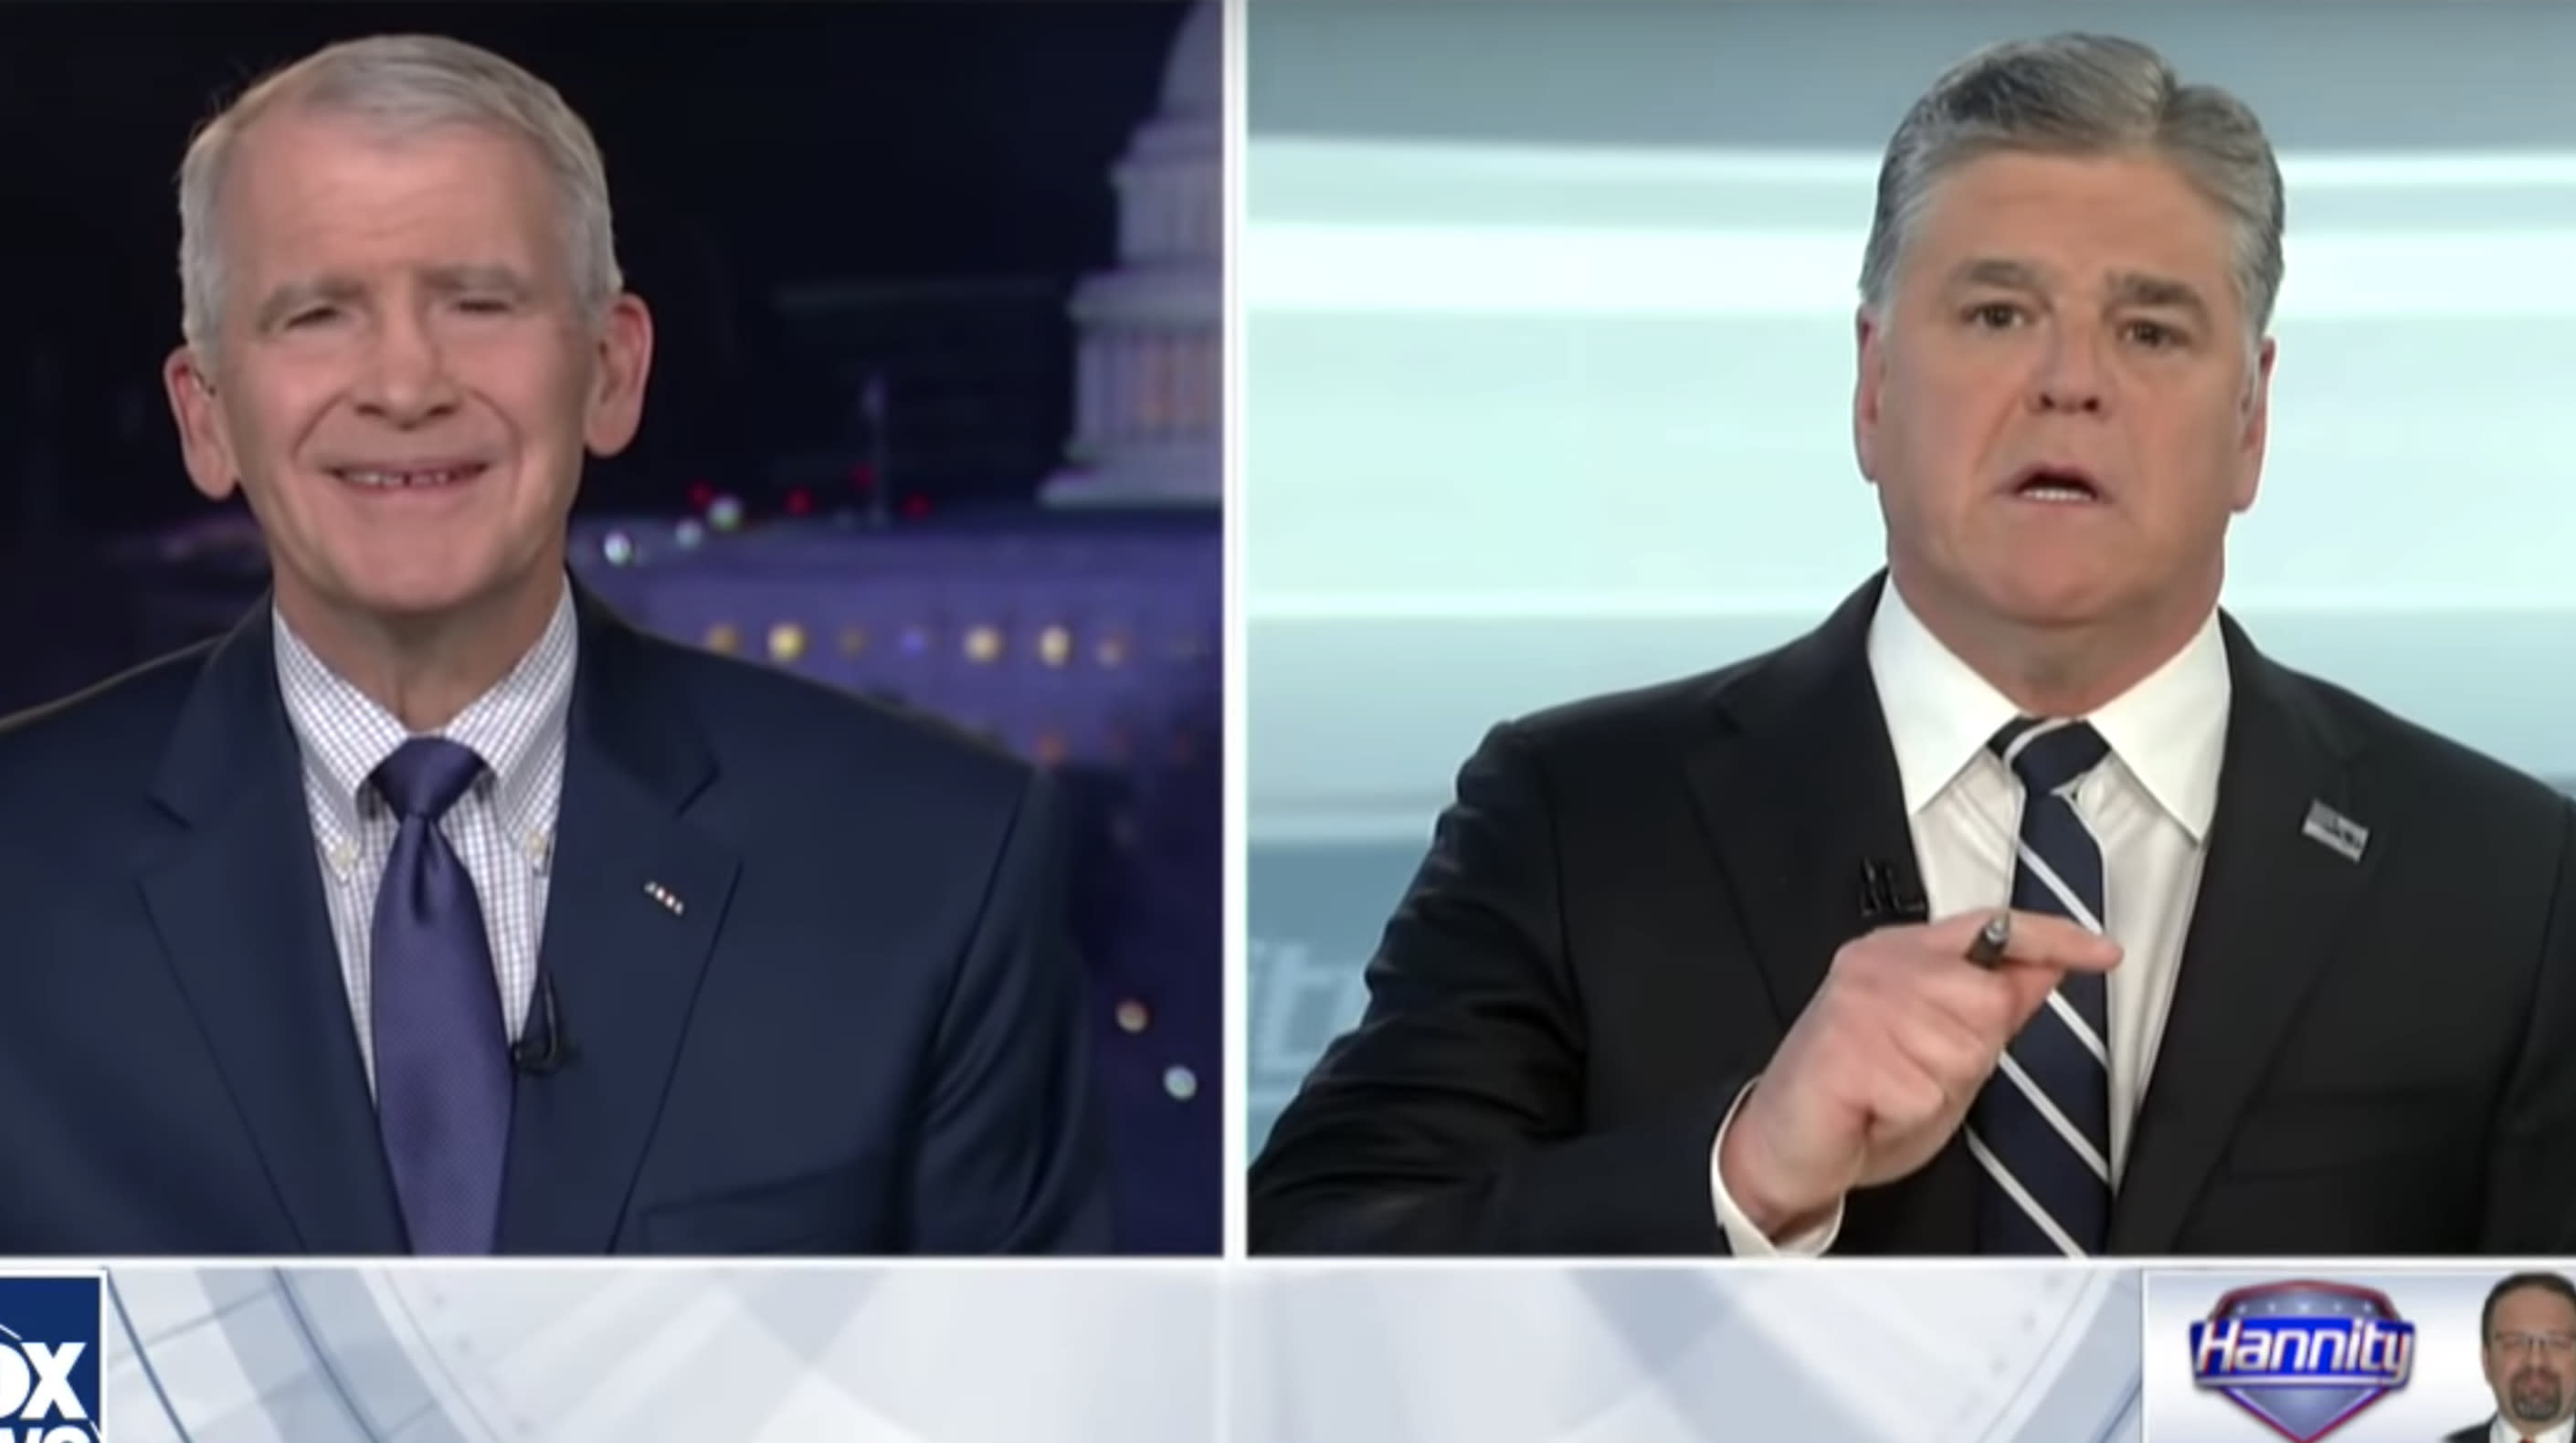 New NRA President Oliver North Suggests All Iranians Are Liars